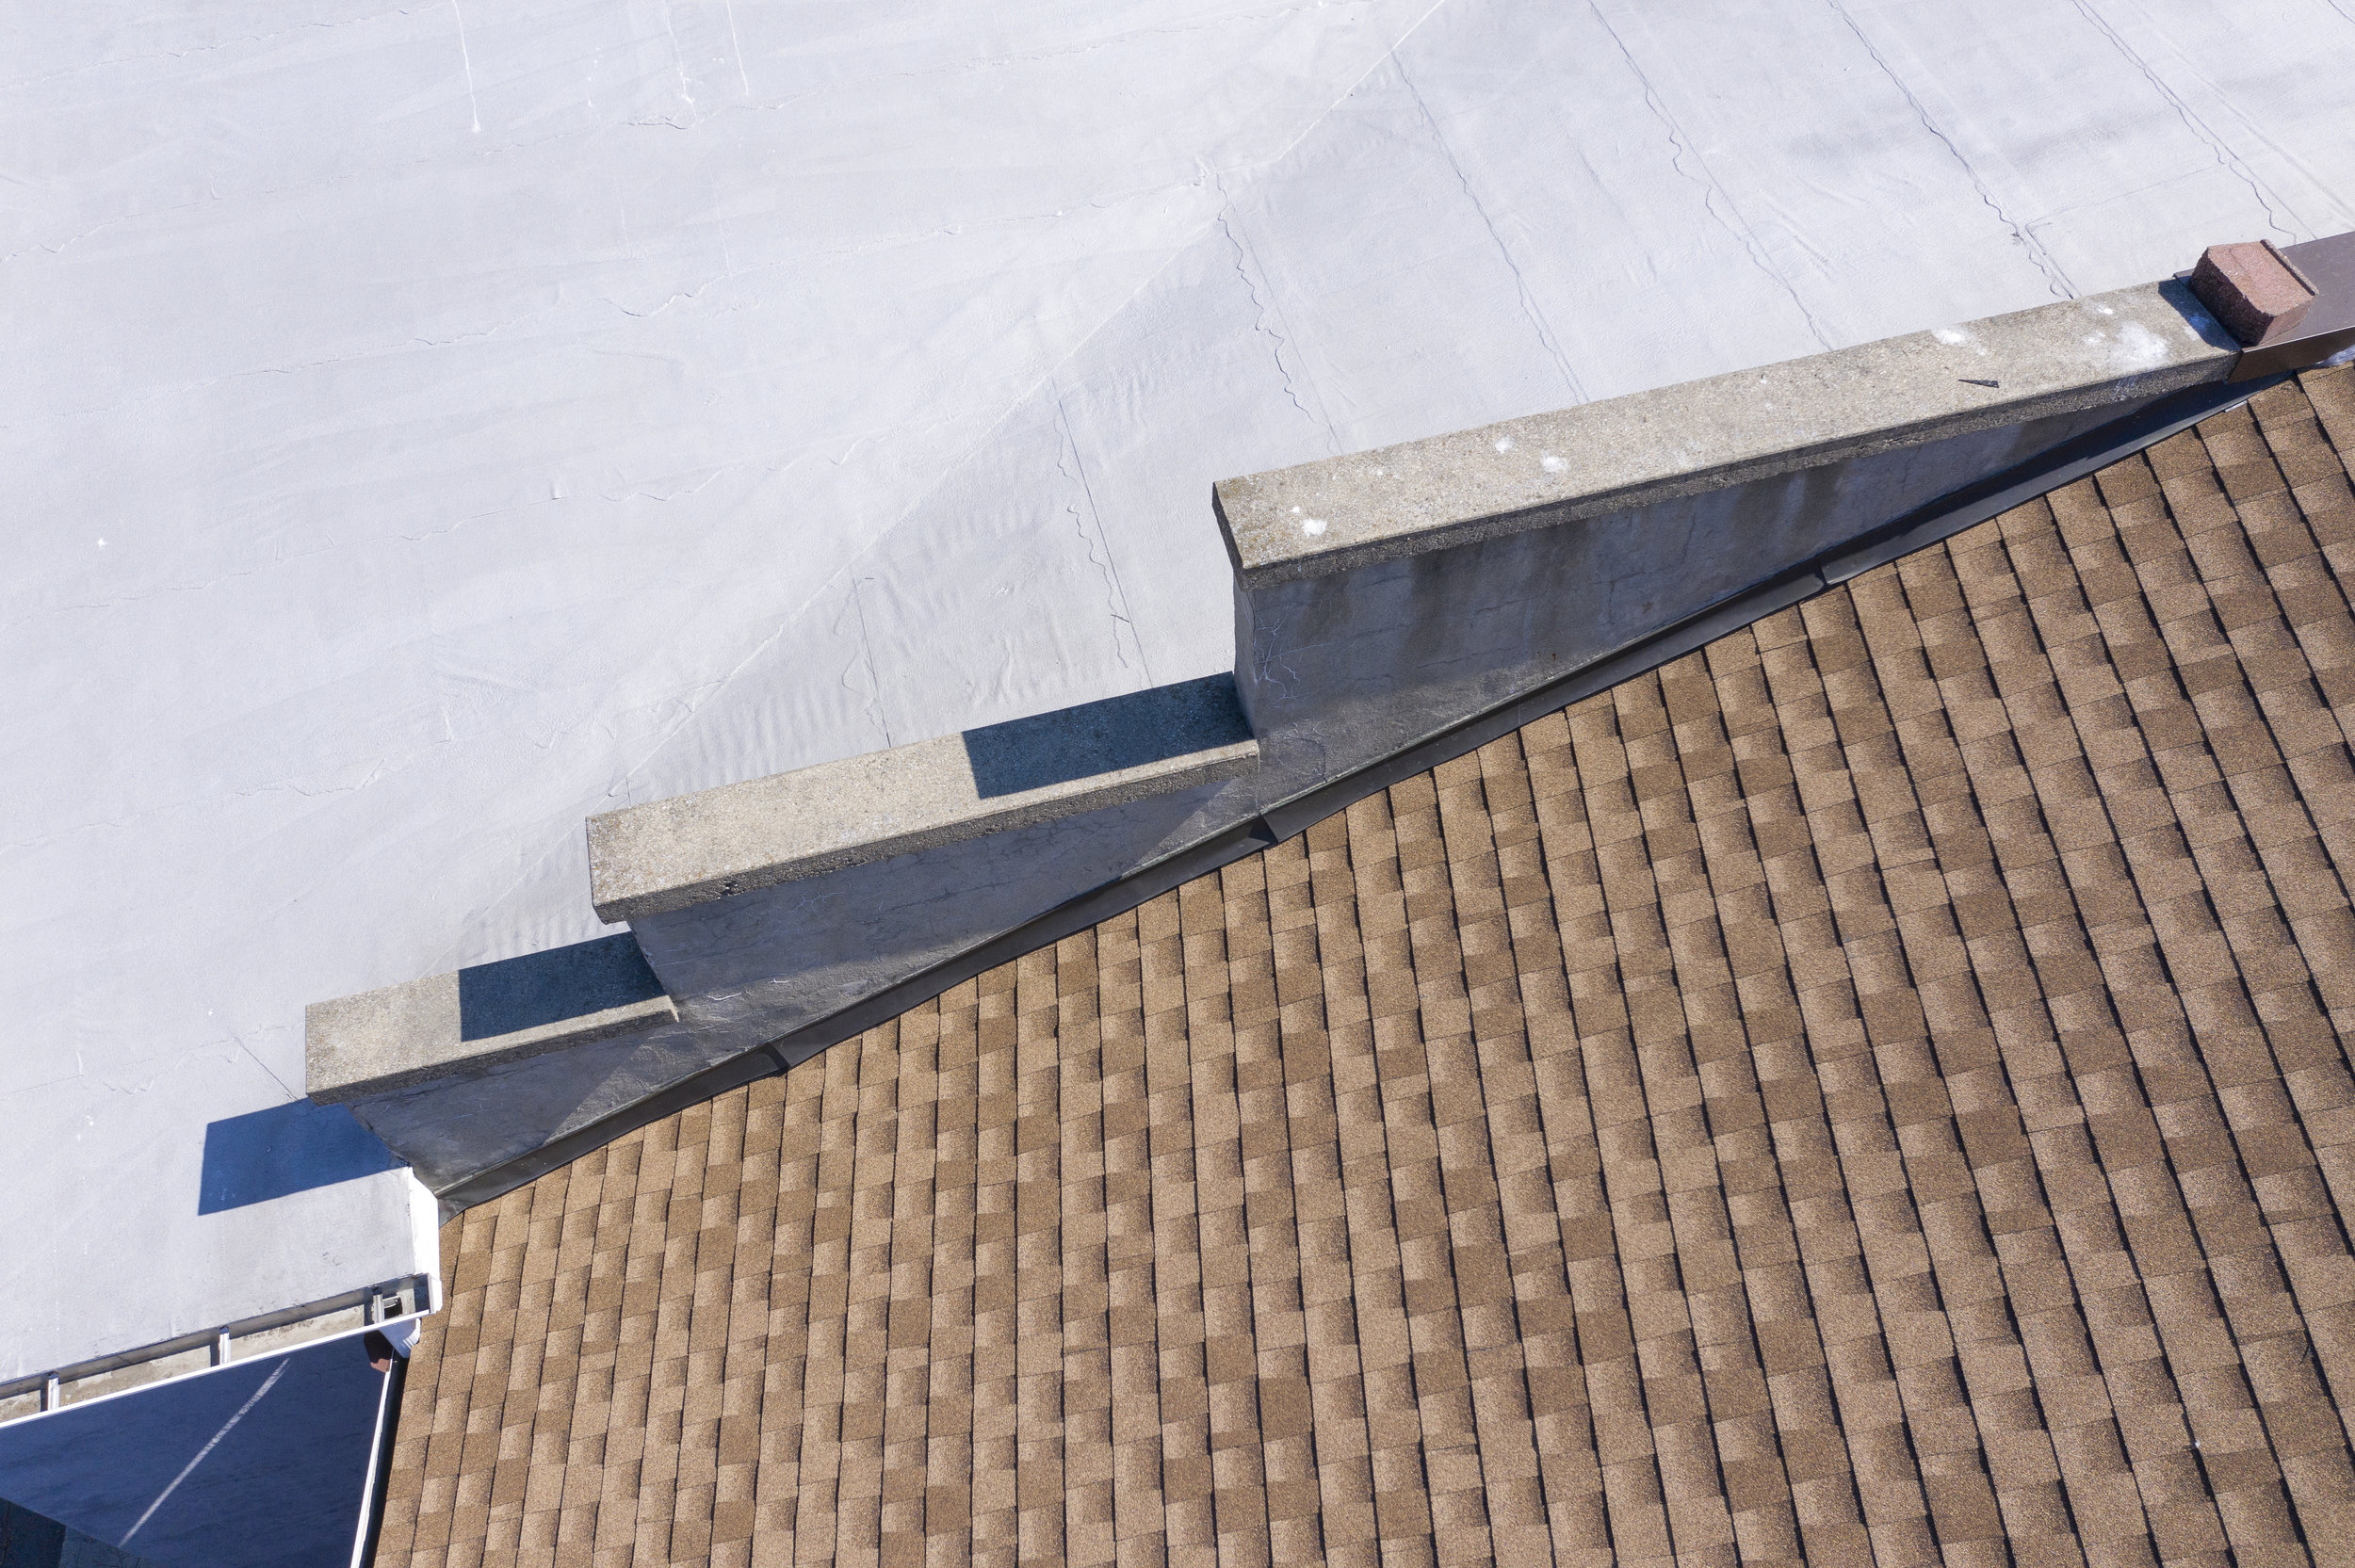 - Commercial roof inspection detail